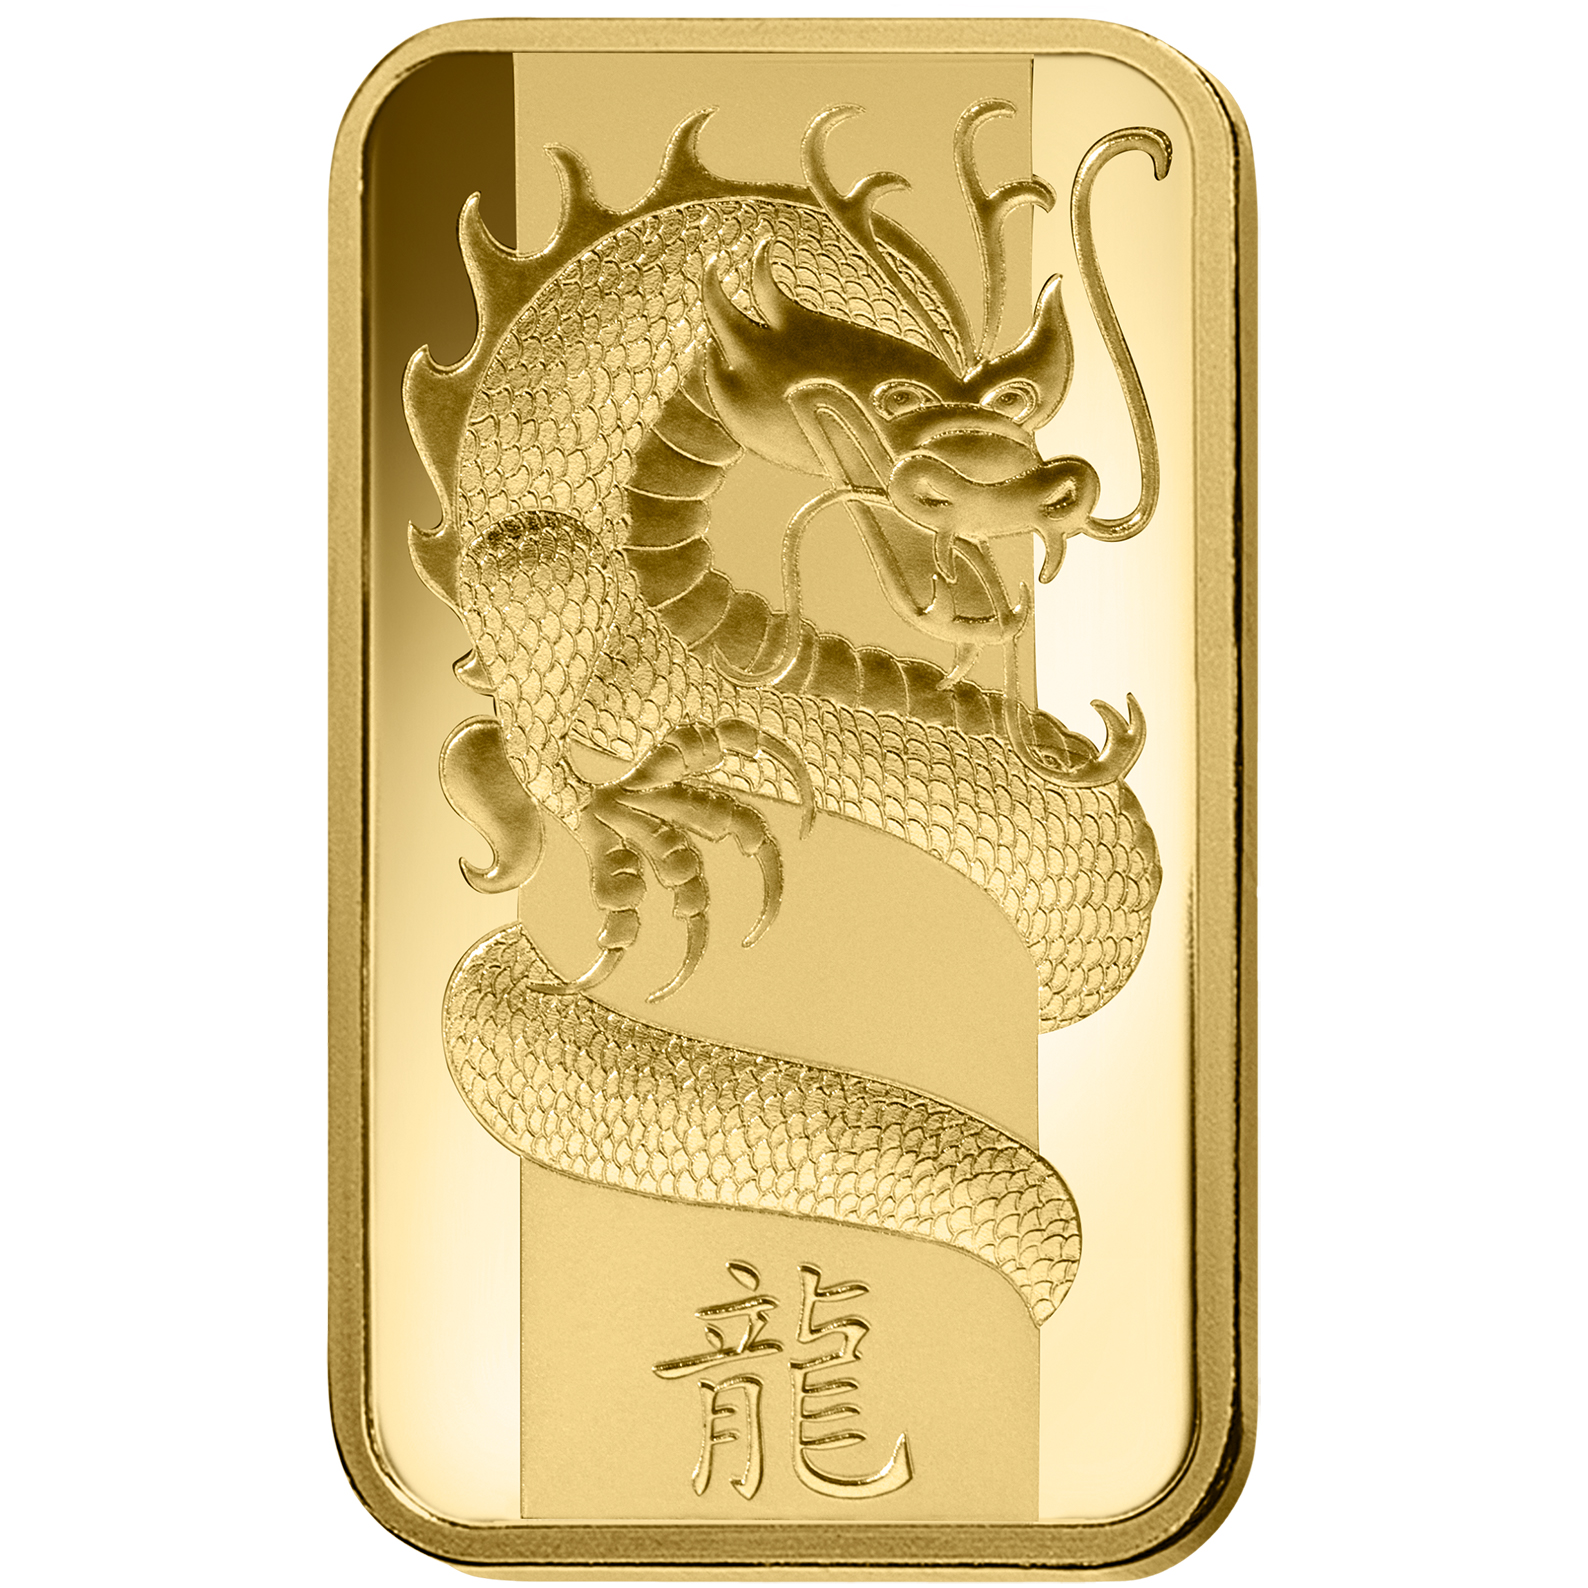 100 gram Fine Gold Bar 999.9 - PAMP Suisse Lunar Dragon